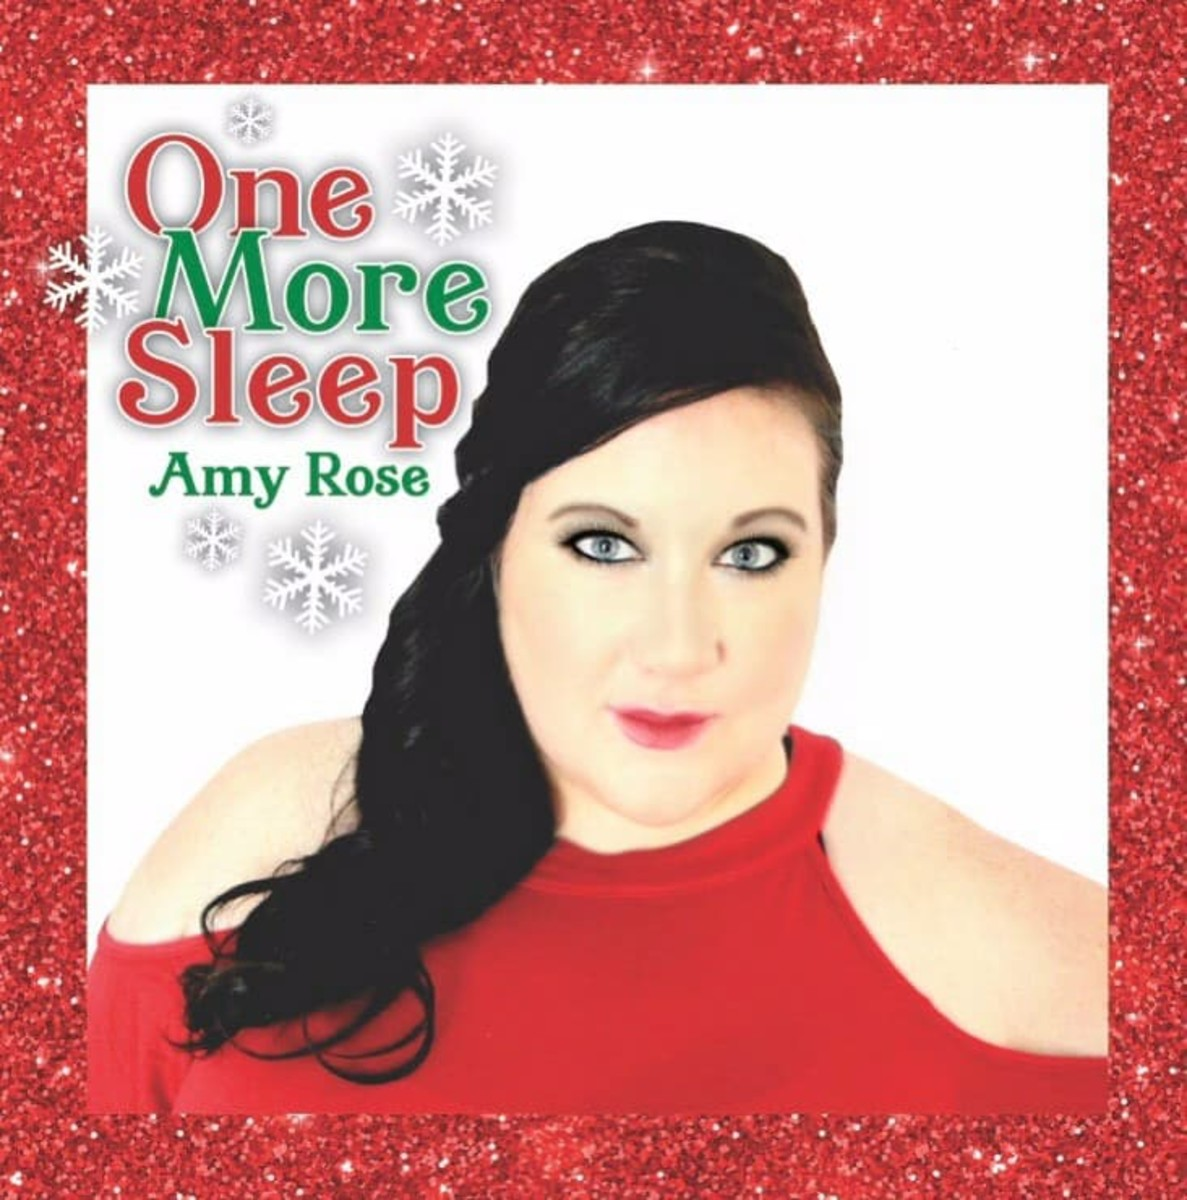 One More Sleep Until Amy Rose Is Back On the Radio With New Christmas Single